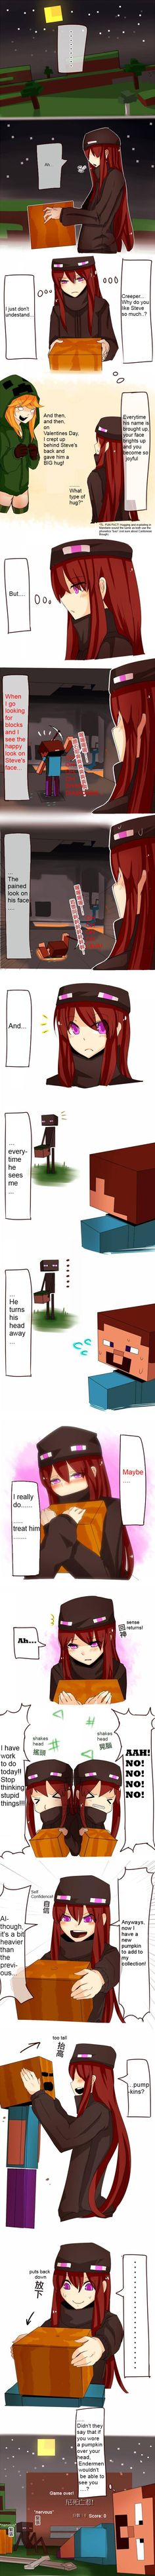 absurdres ander andr blonde hair blush brown hair comic creeparka creeper cupa death enderman gameplay mechanics genderswap highres incredibly absurdres long hair long image minecraft multiple girls night personification pickaxe p Minecraft Logic, Minecraft Fan Art, Minecraft Skins, Real Minecraft, Warframe Art, Fanart, Stuff And Thangs, Anime Eyes, Fun Comics